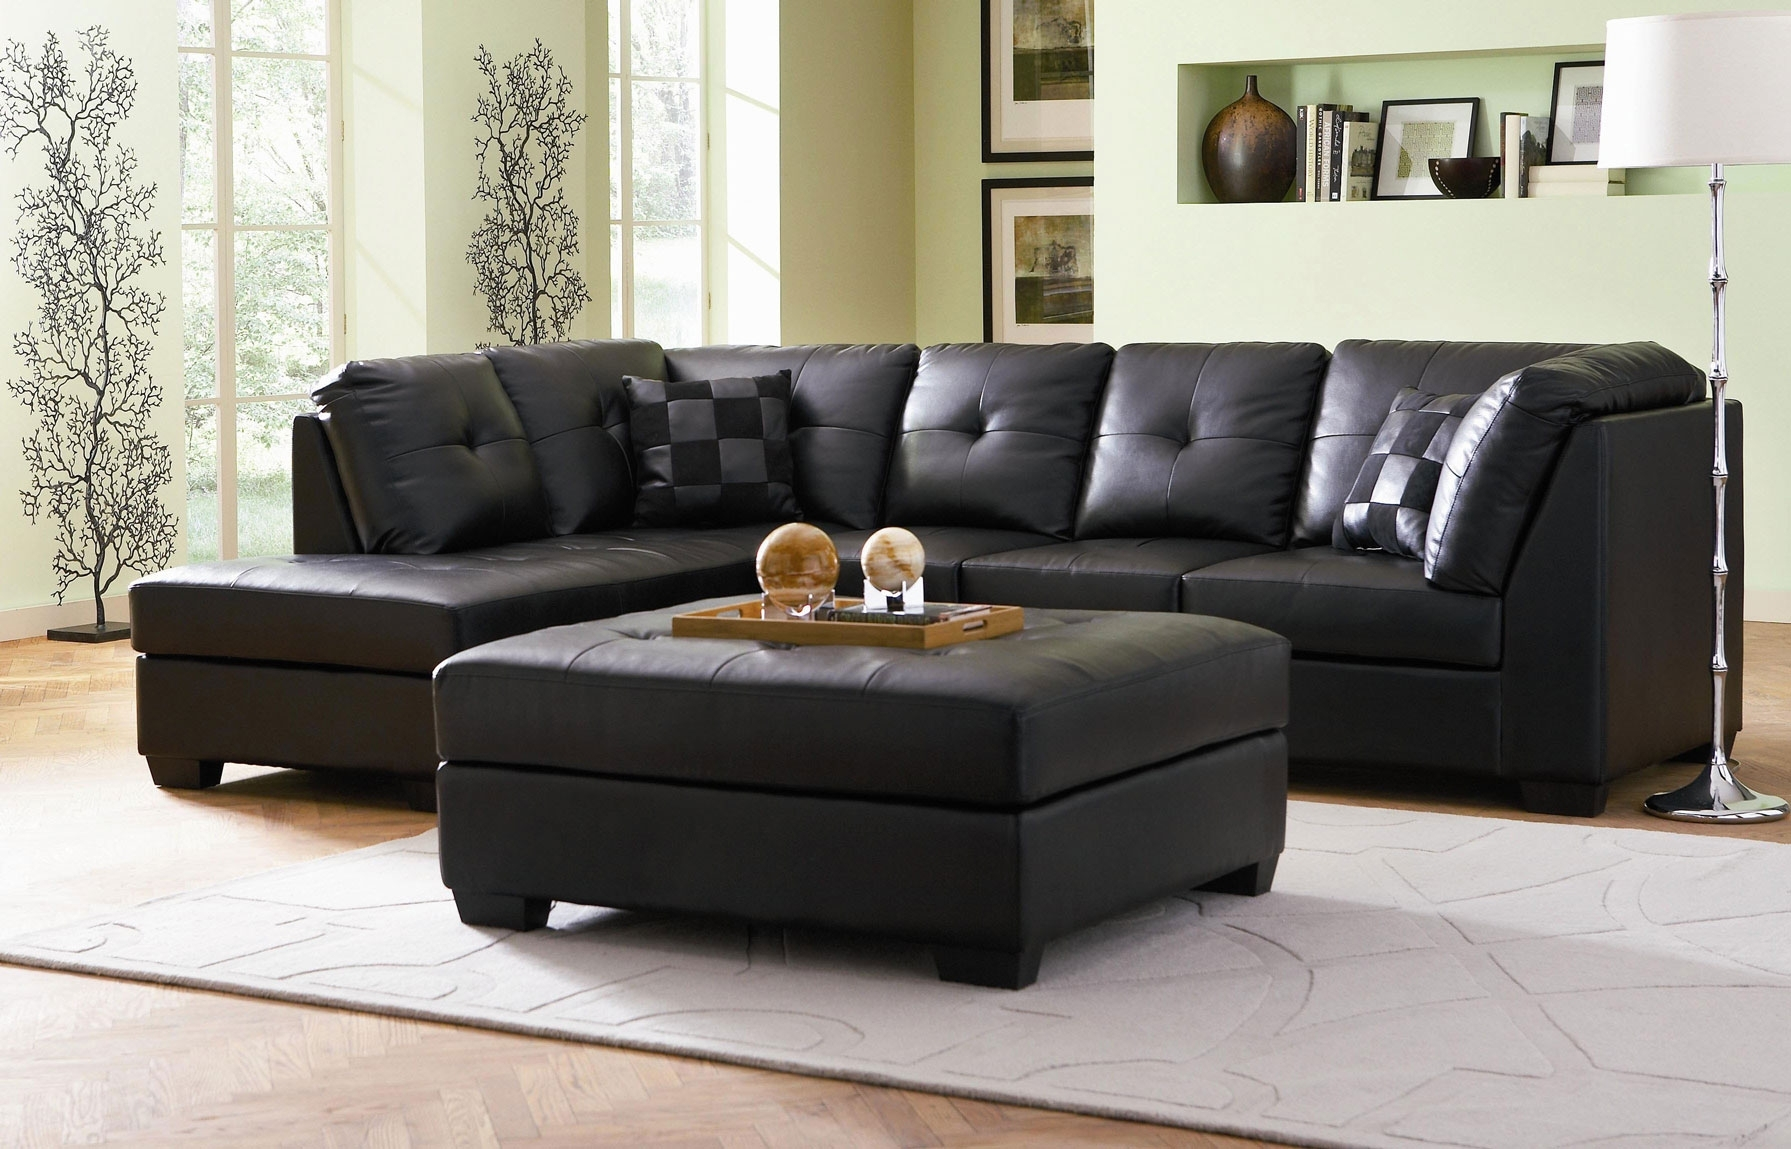 Sectional Sofa. Best Quality Sectional Sofas Jacksonville Fl regarding Jacksonville Florida Sectional Sofas (Image 6 of 10)